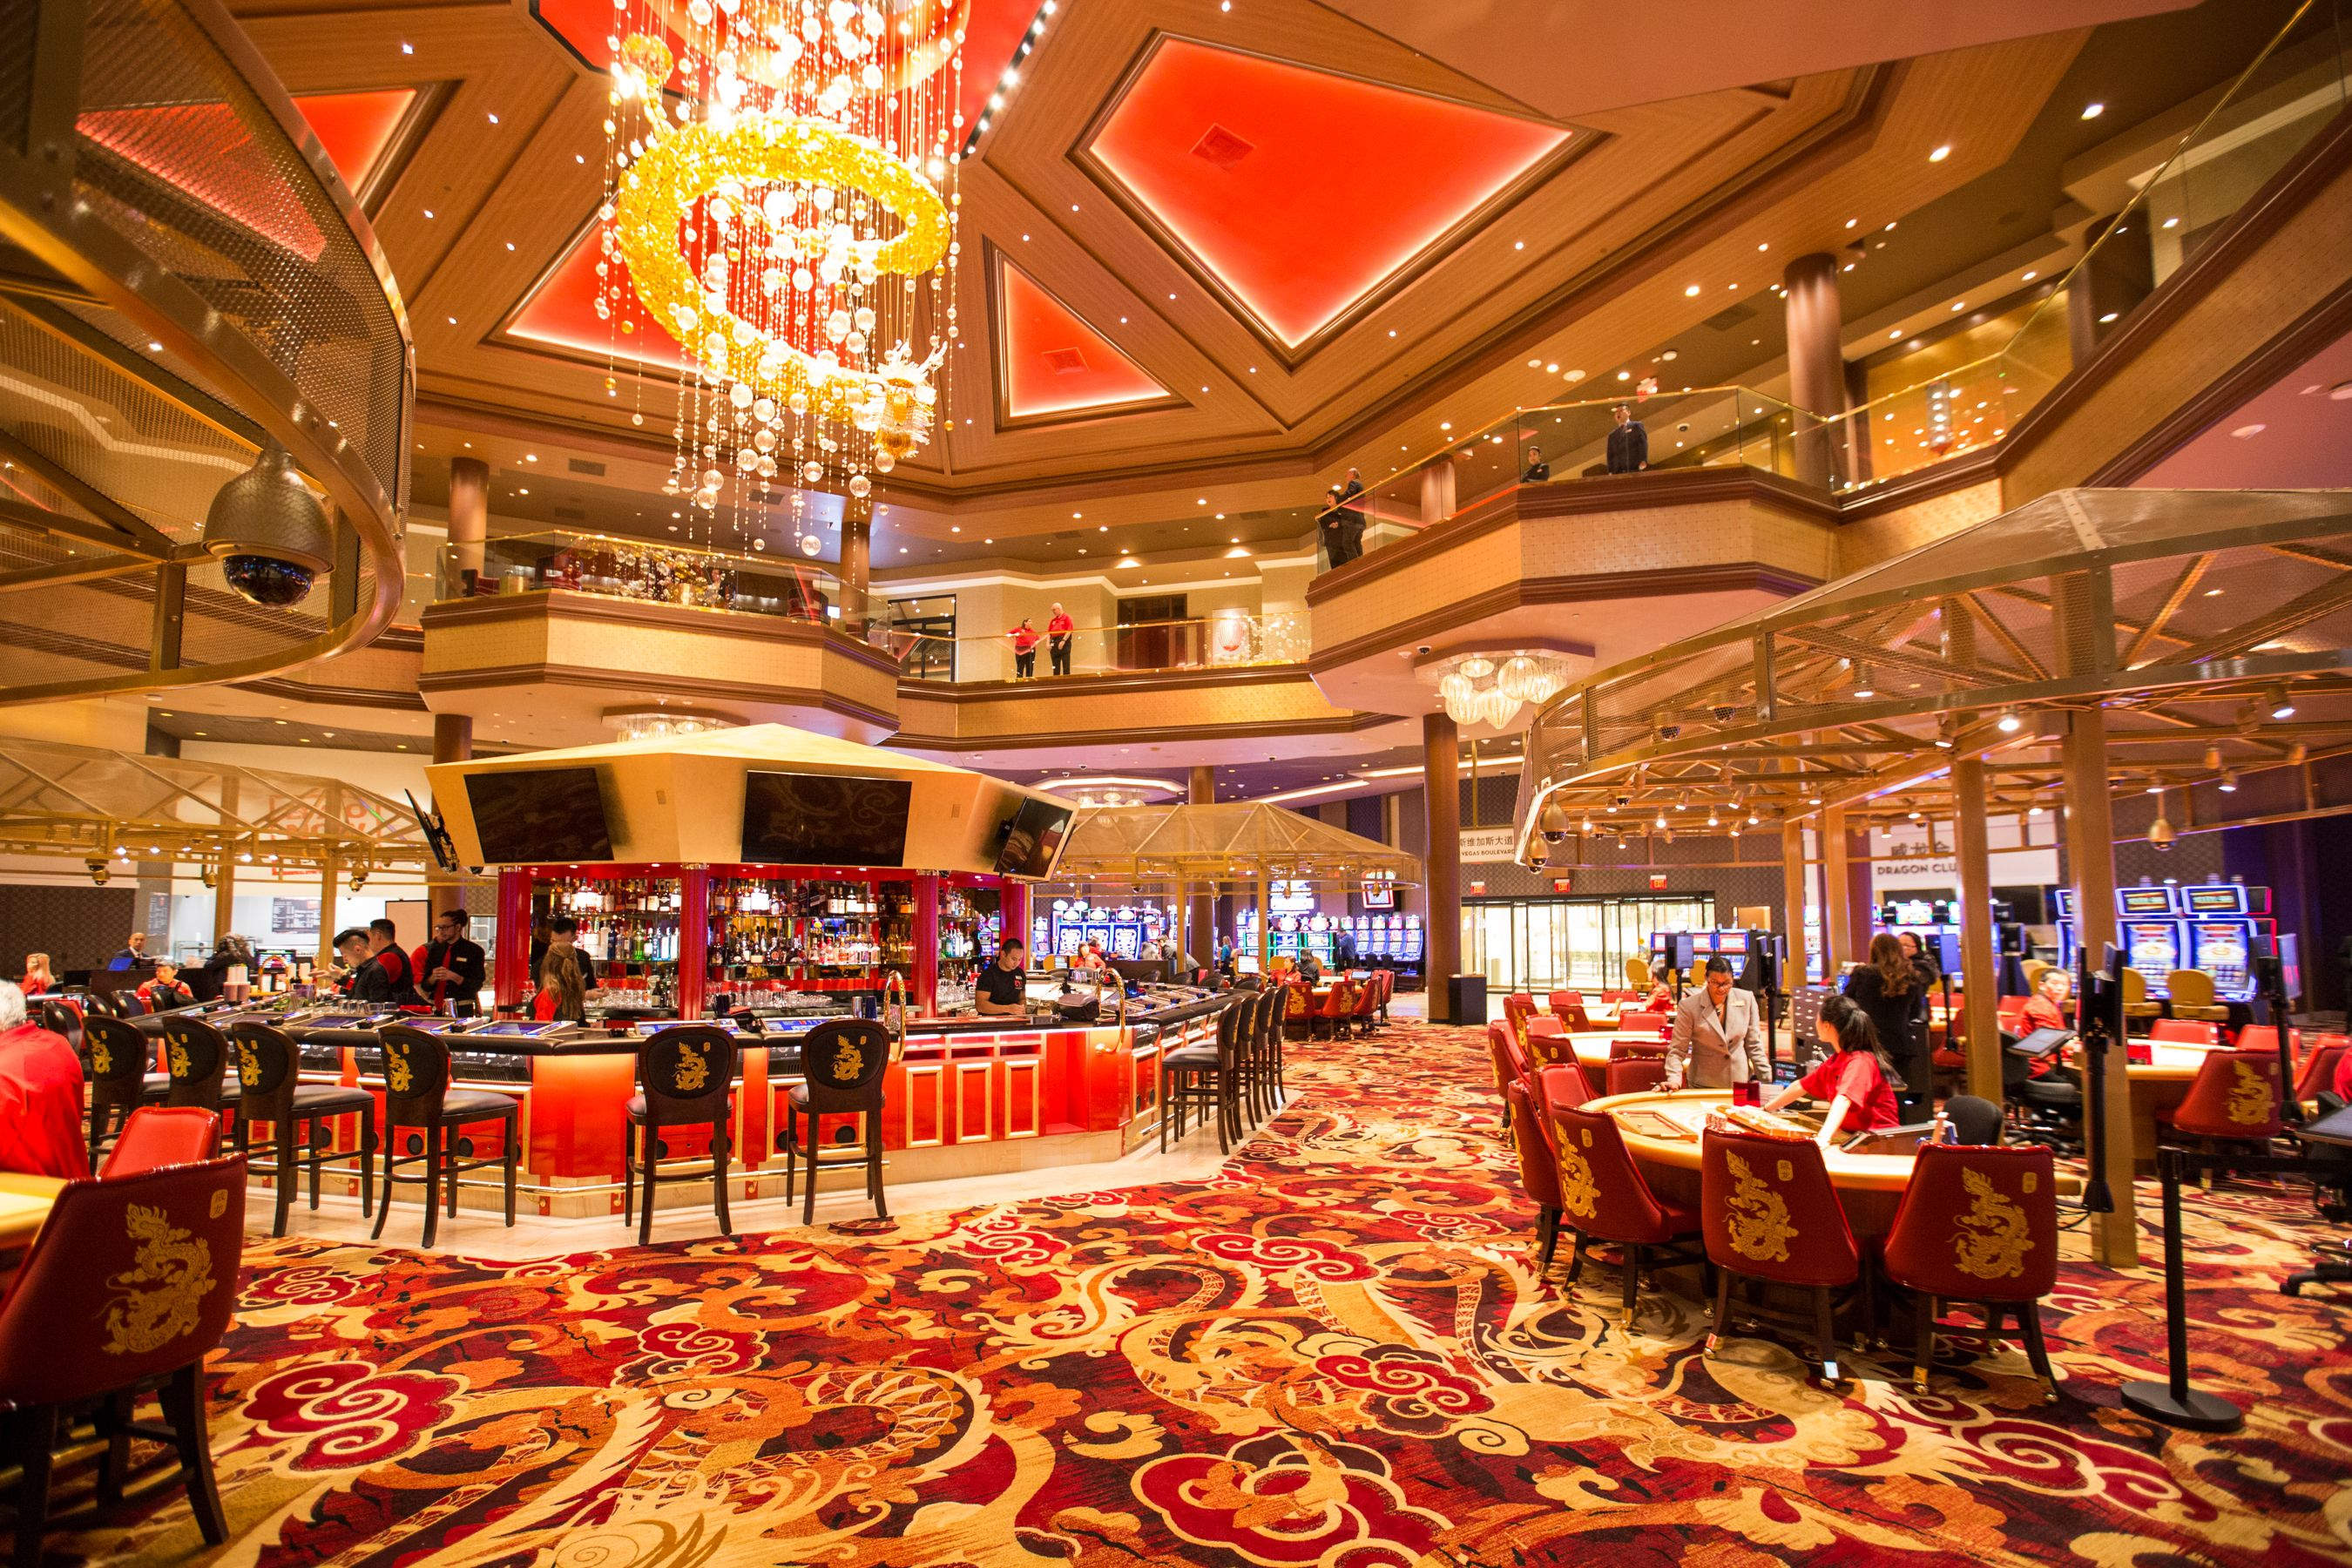 Newest Las Vegas Hotel Casino  The Lucky Dragon Hotel  U0026 Casino  Opens With The Invotech Rfid